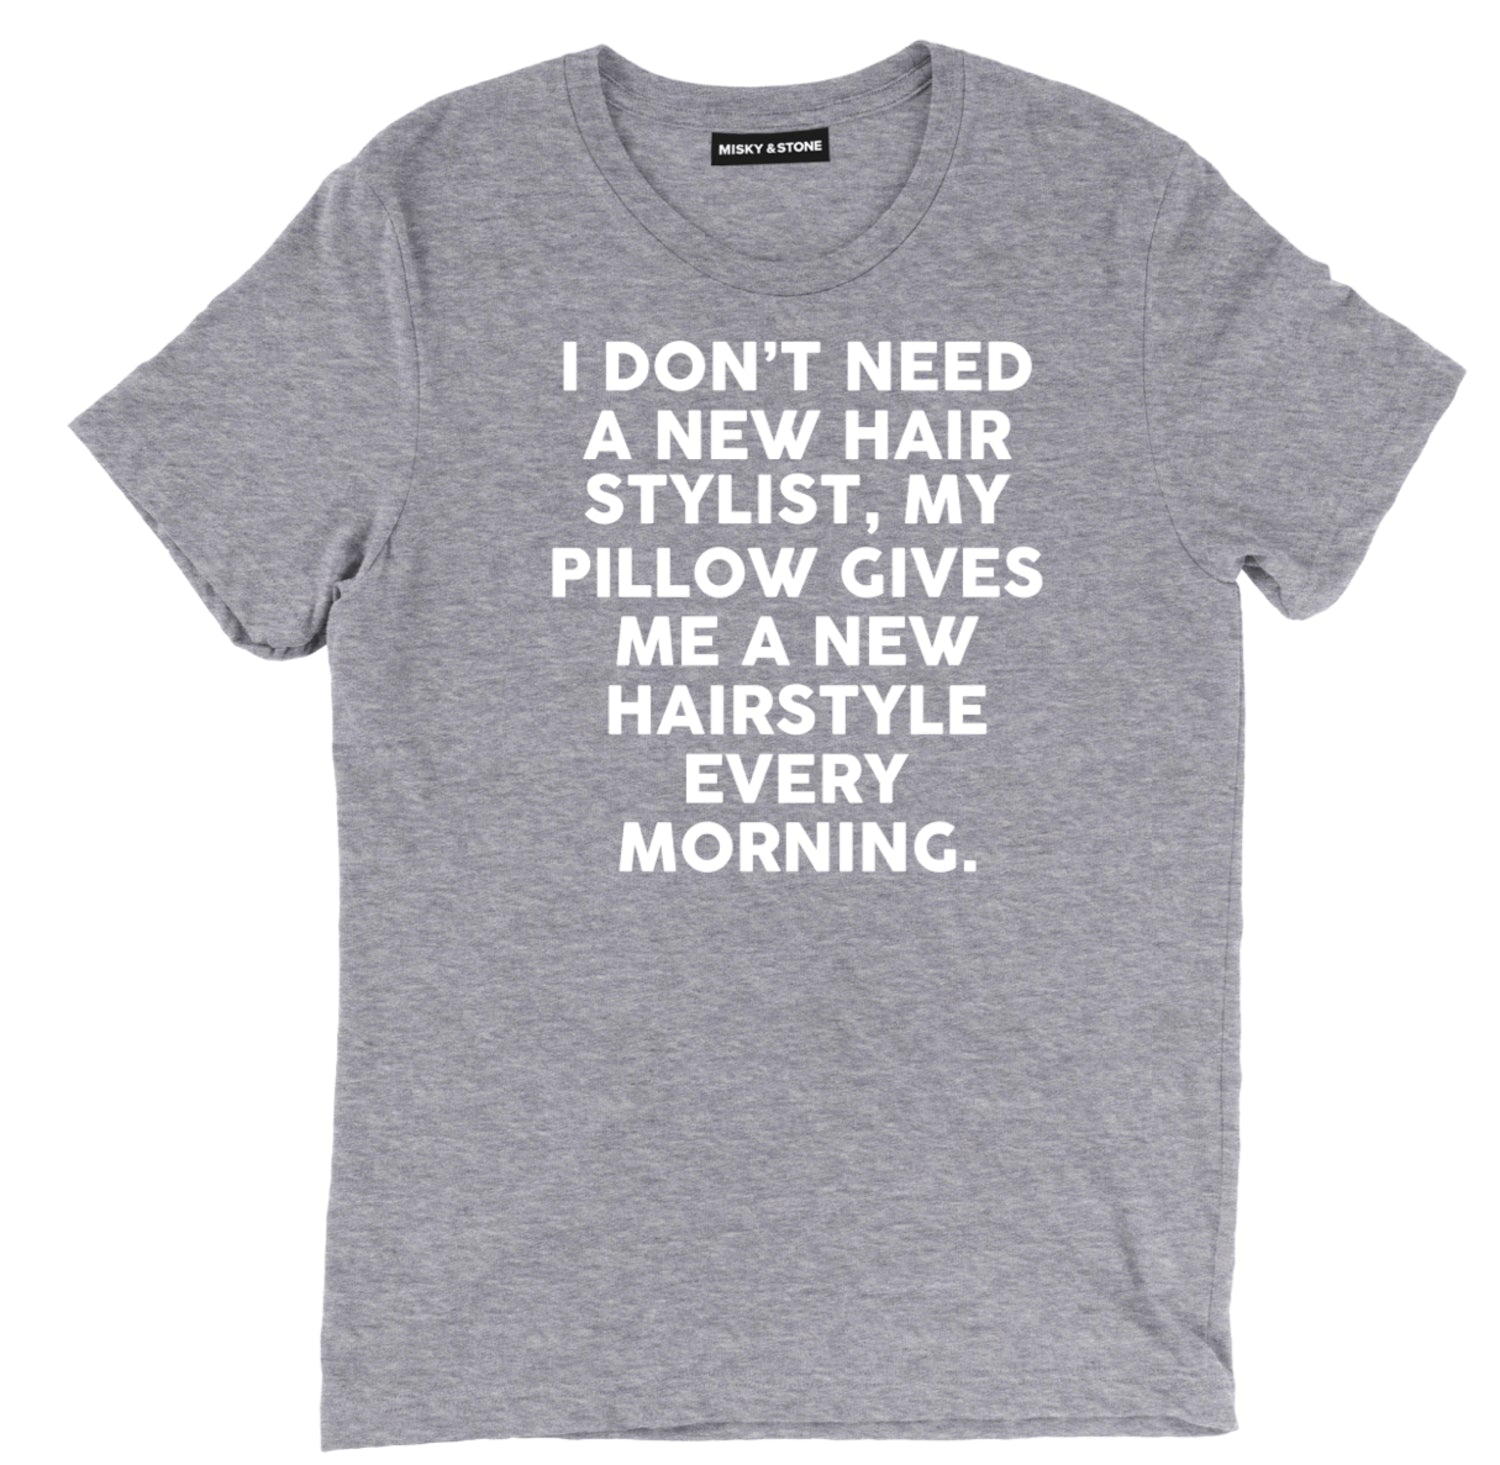 morning hair sarcastic t shirts, funny morning hair sarcastic shirts, hair stylist sarcastic tee shirts, sarcastic tees, sarcastic t shirt sayings, sarcastic t shirts quotes, funny sarcastic t shirts,